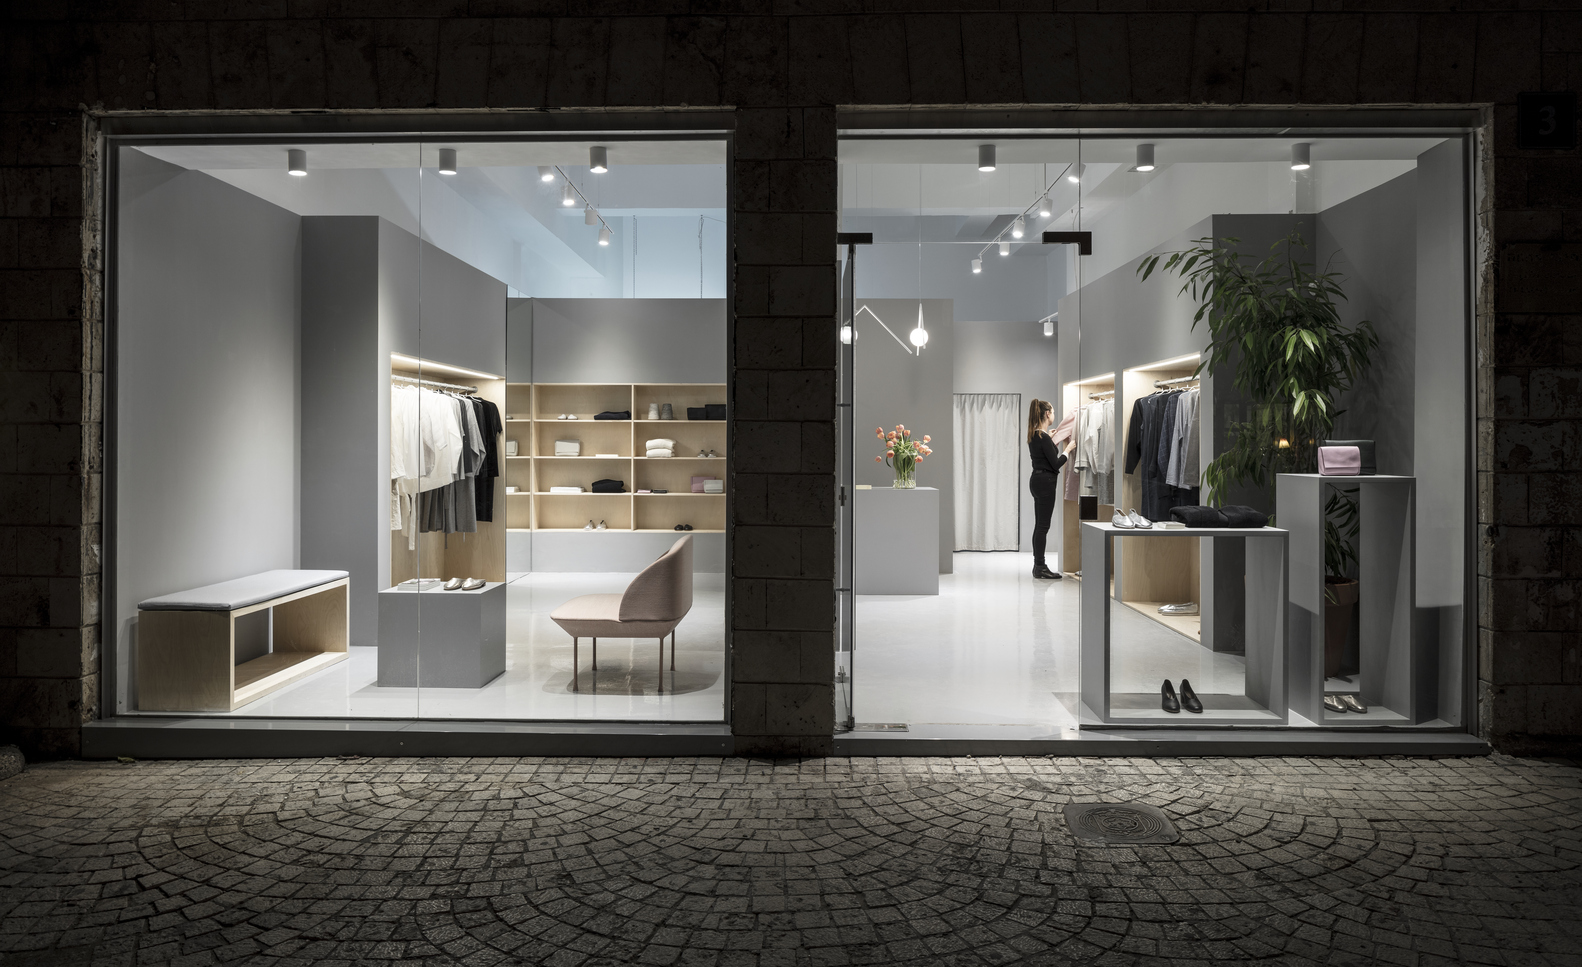 retail lighting five best practices language of light the intersection of lighting efficiency and architecture